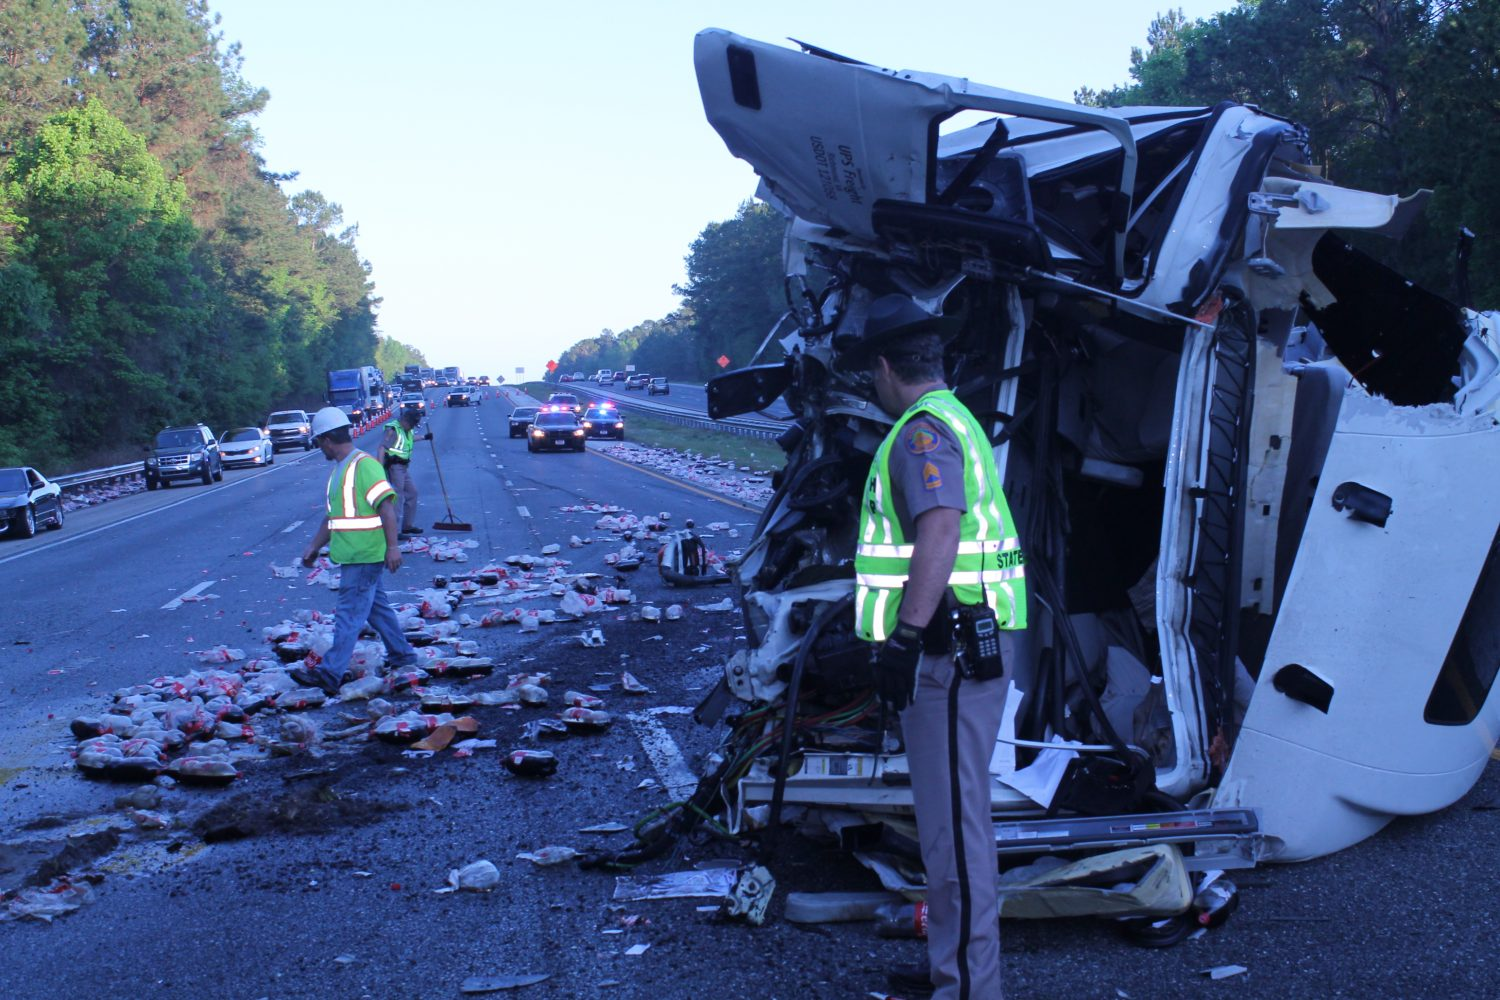 I-75 Lanes Clear After Early Morning Accident – WUFT News